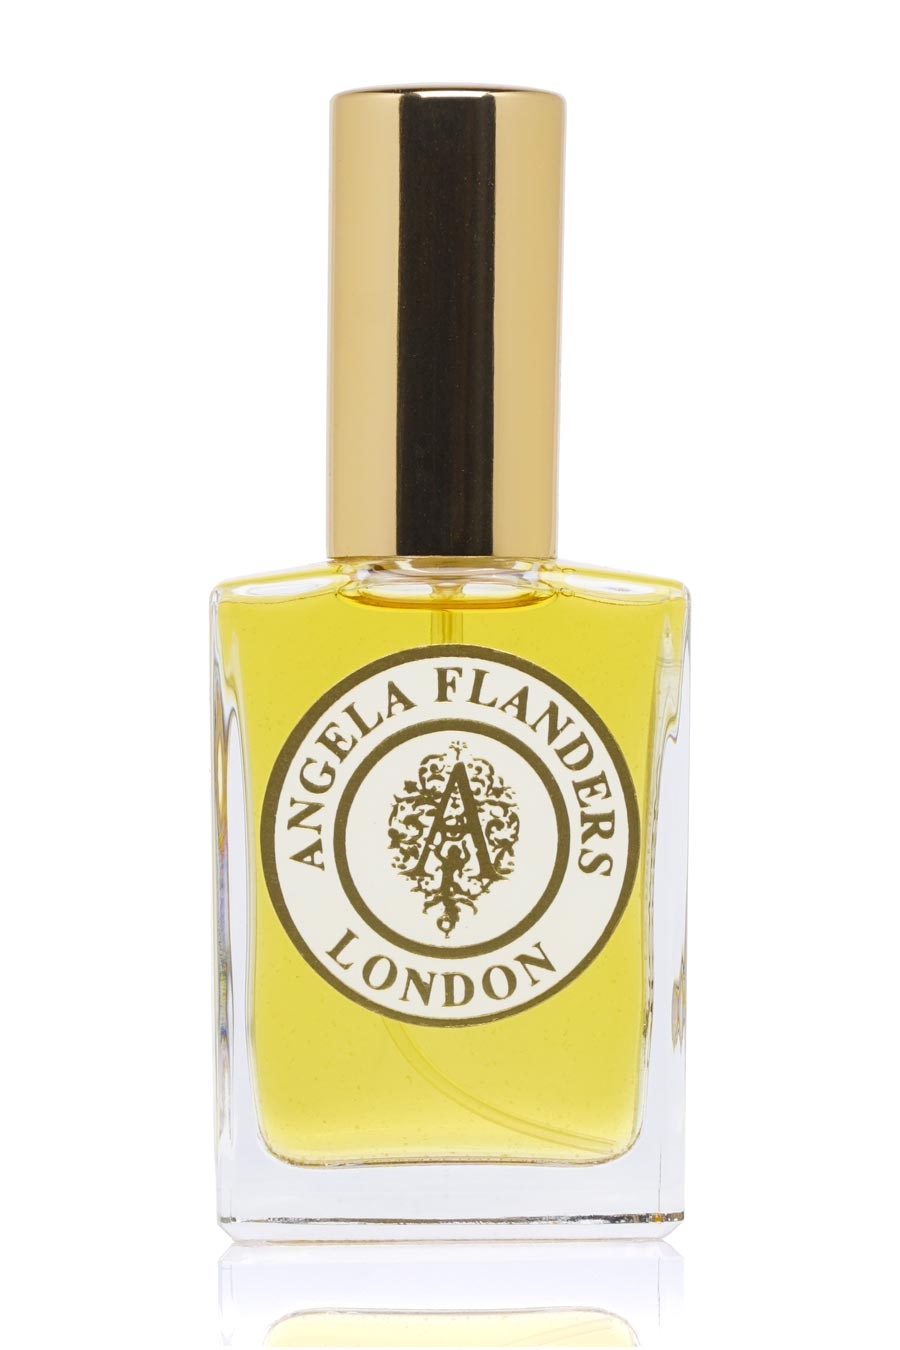 Angela Flanders Earl Grey Eau de Toilette 30ml